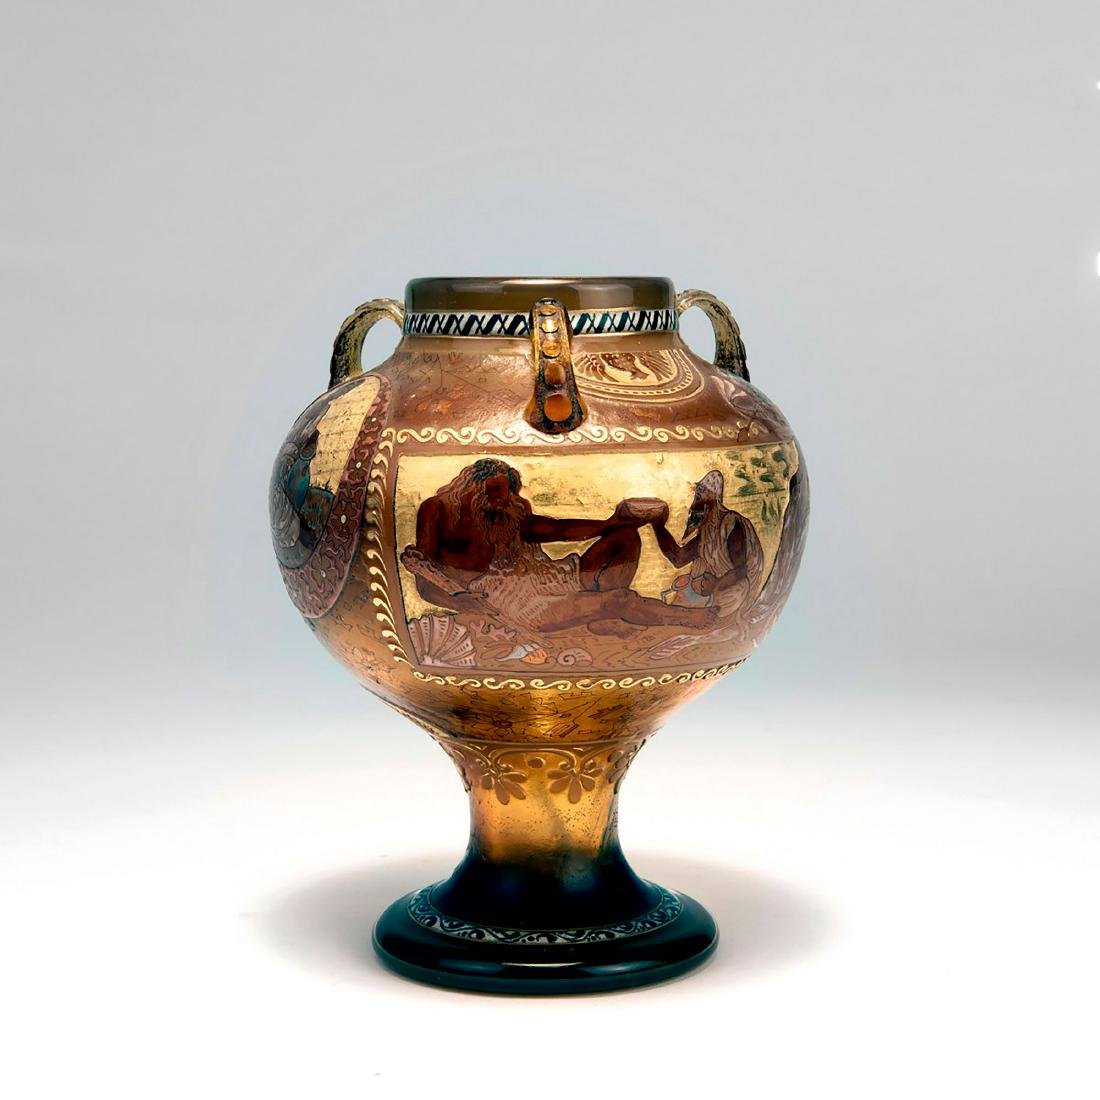 'Echoes of Hellas' vase with handles, 1895-1900